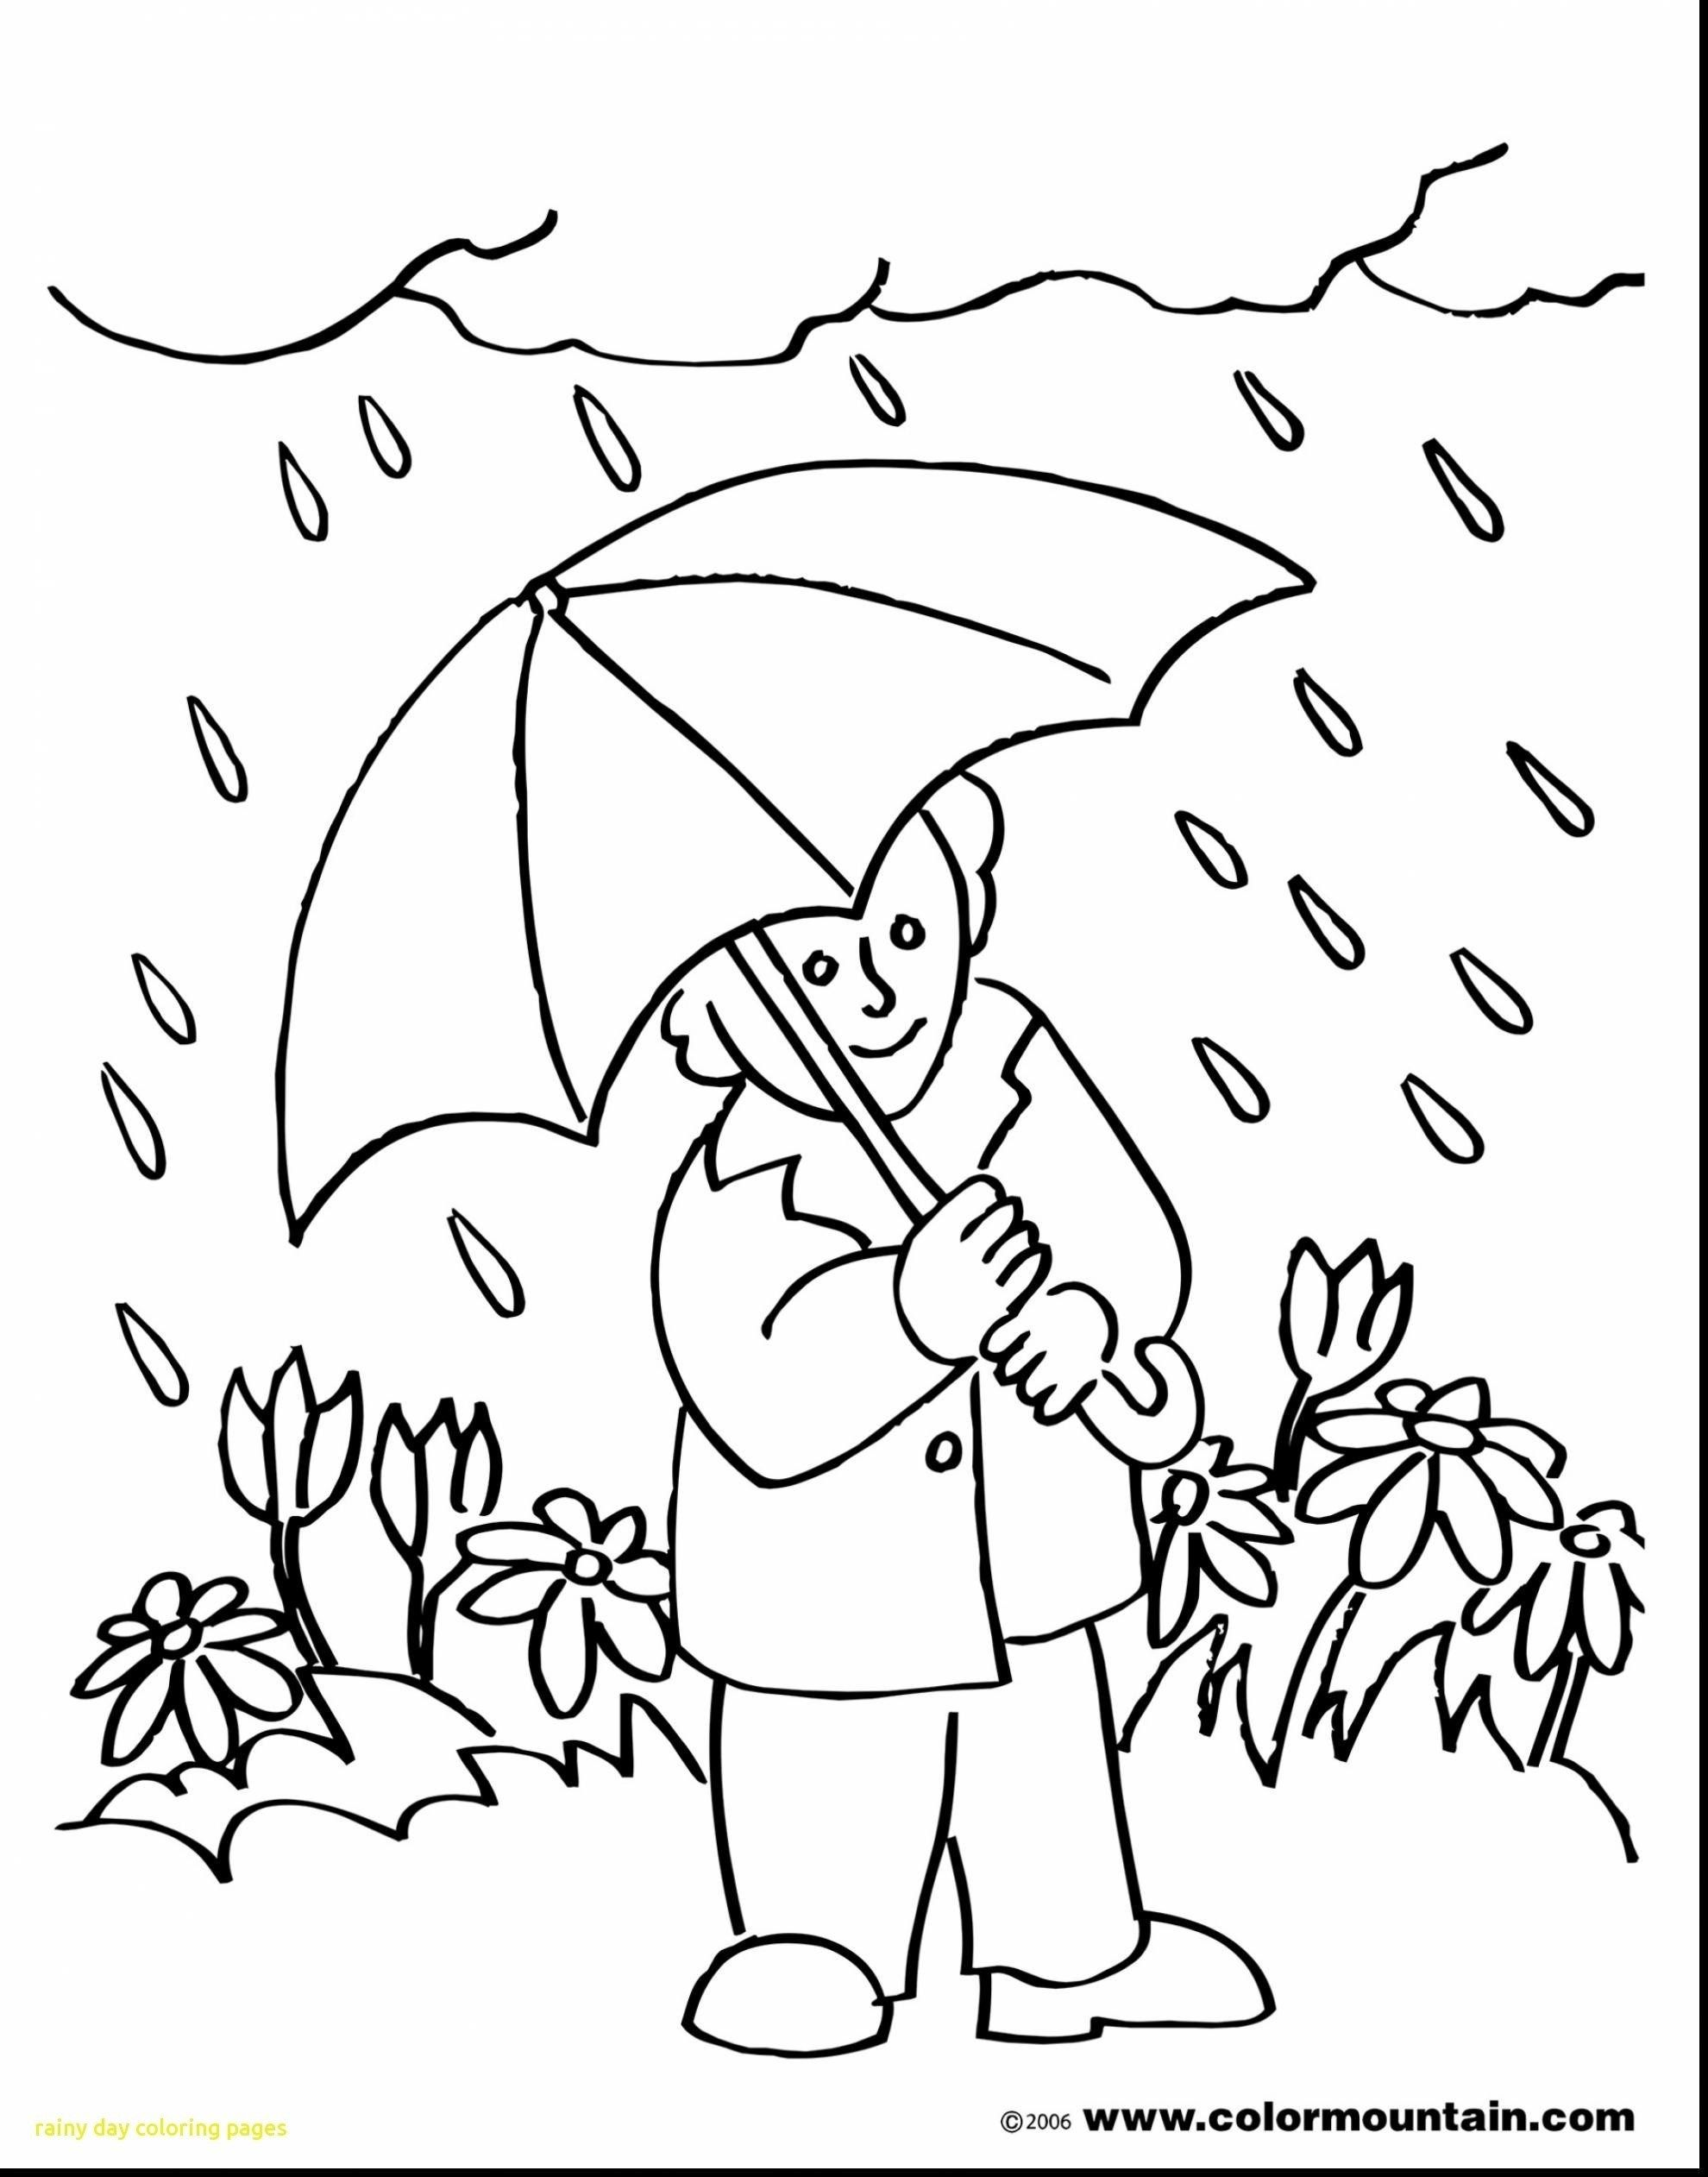 25 Wonderful Picture Of Rainy Day Coloring Pages Davemelillo Com Witch Coloring Pages Fall Coloring Pages Coloring Pages